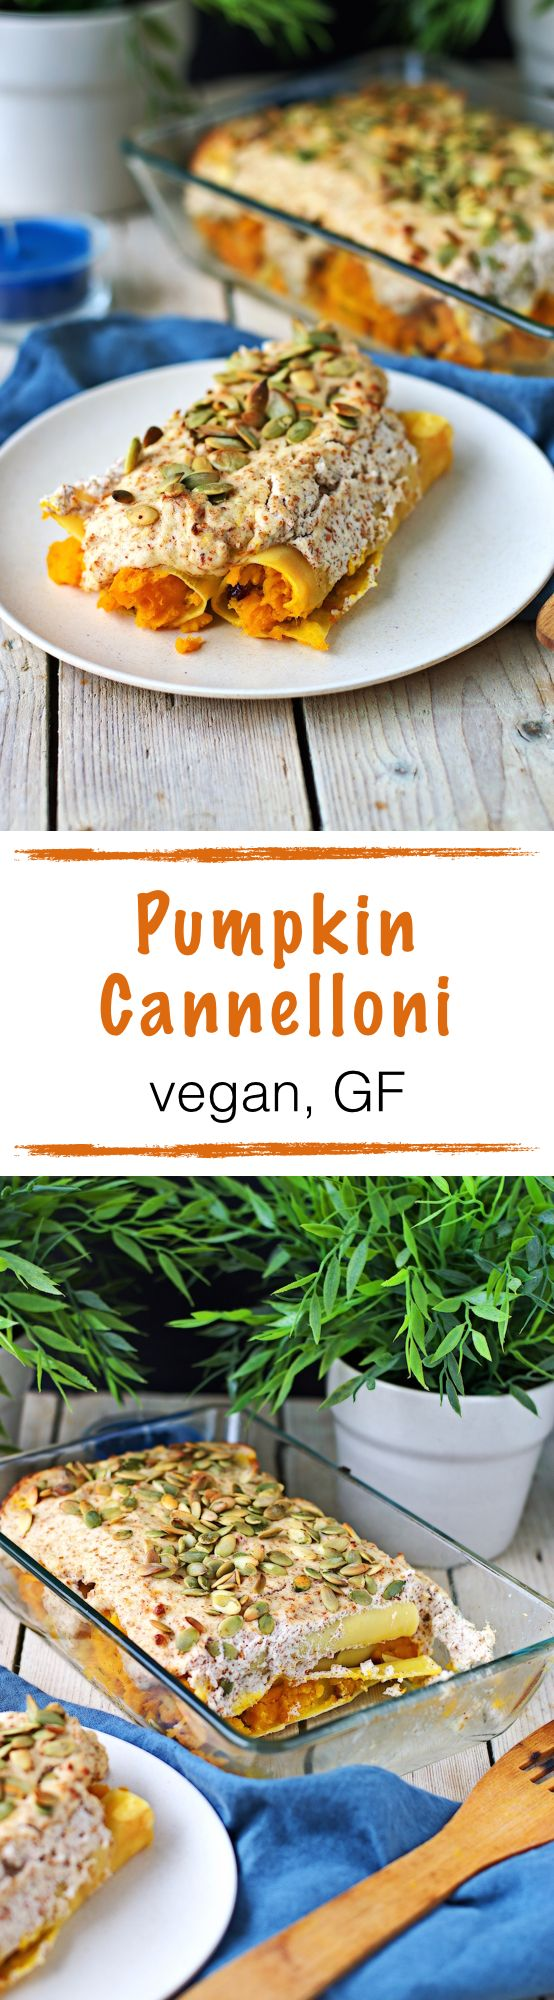 Pumpkin Cannelloni vegan and gluten free Pumpkin Cannelloni which  come with a filling made from pumpkin, onions, and cranberries and are topped by an amazing almond crust and pumpkin seeds. Don't miss out on this for an hearty and delicious dinner.